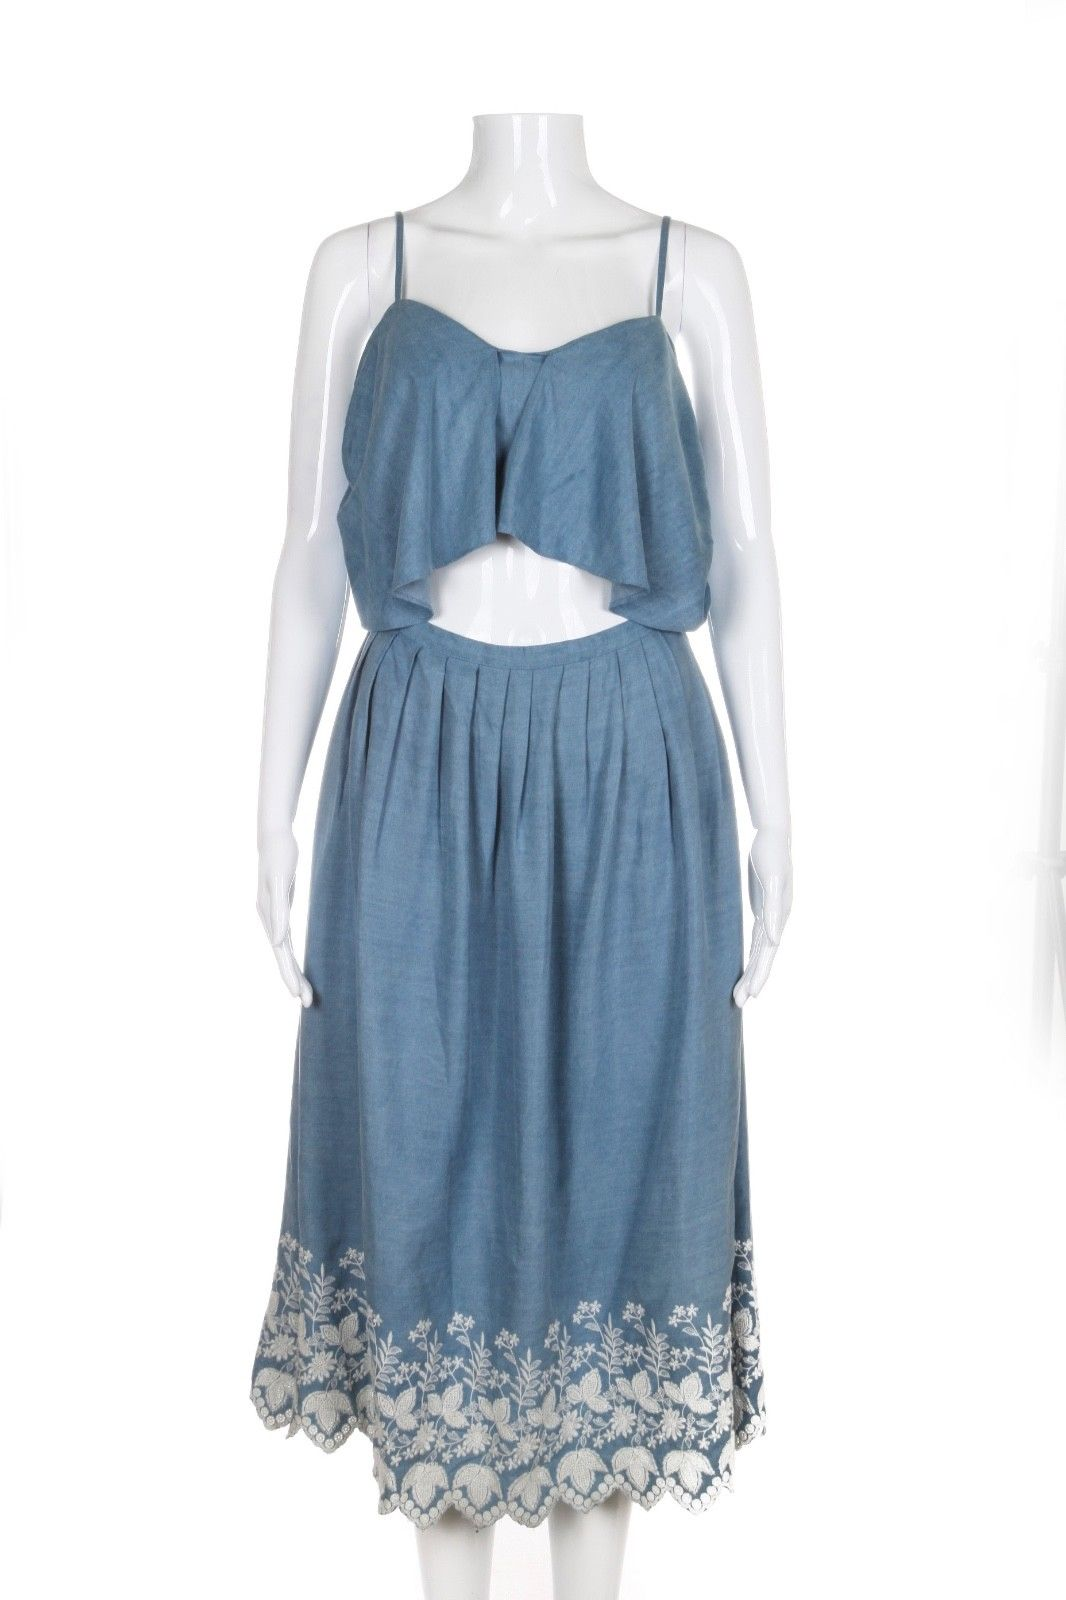 LOVE SHACK FANCY Blue Light Indigo Denim Cut Out Dress Size S (New)